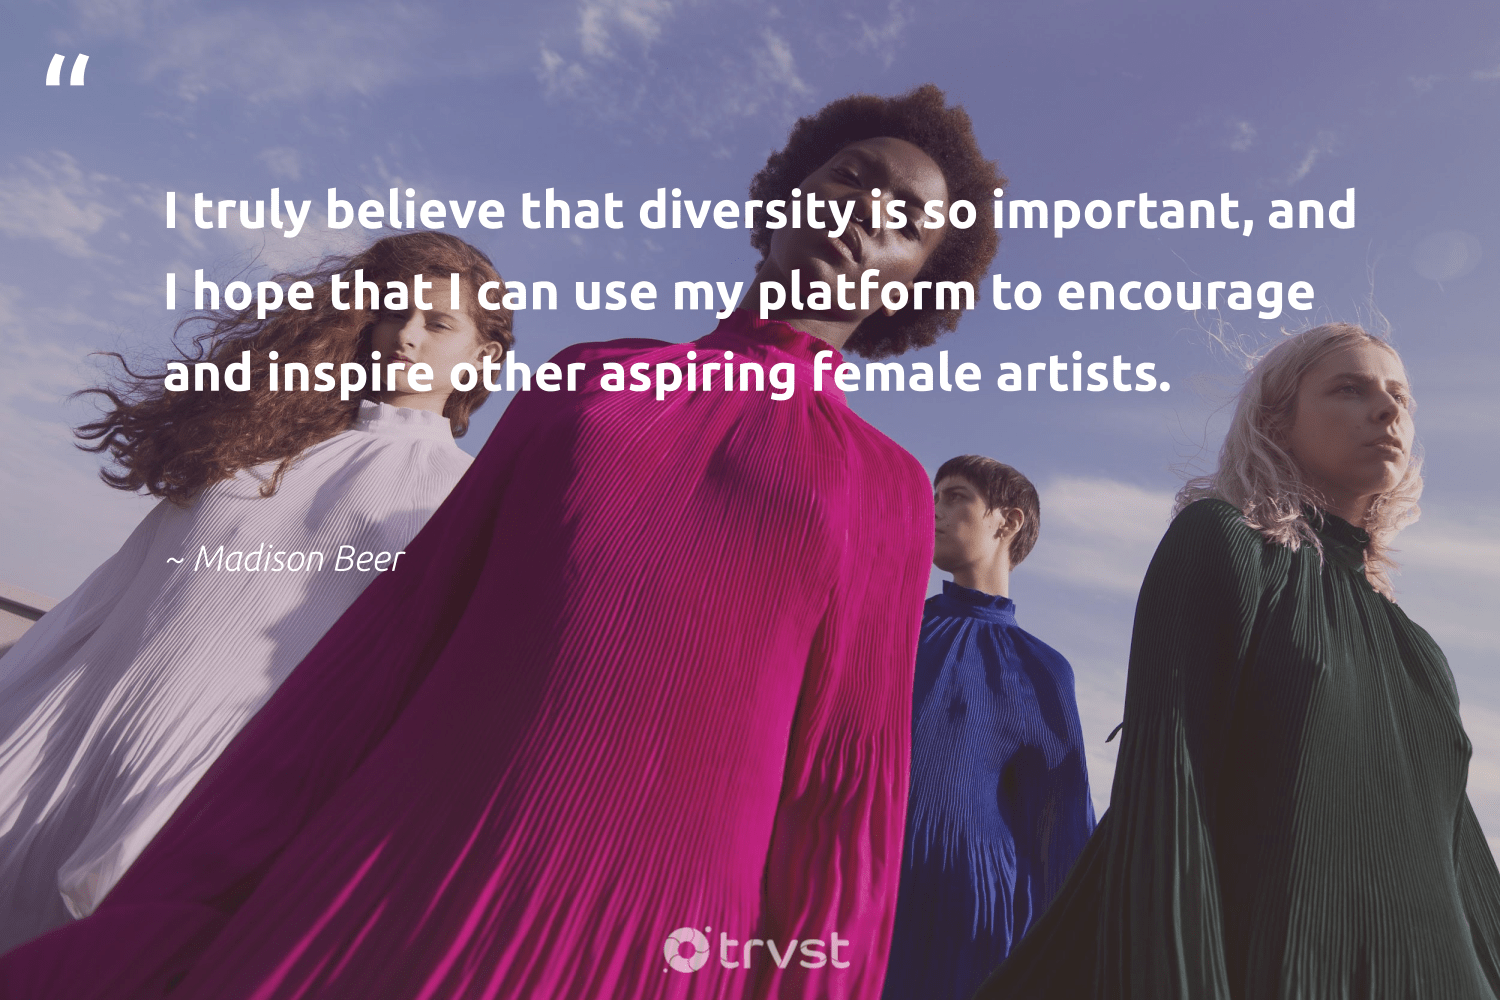 """I truly believe that diversity is so important, and I hope that I can use my platform to encourage and inspire other aspiring female artists.""  - Madison Beer #trvst #quotes #diversity #hope #discrimination #representationmatters #bethechange #socialchange #beinspired #inclusion #weareallone #socialgood"